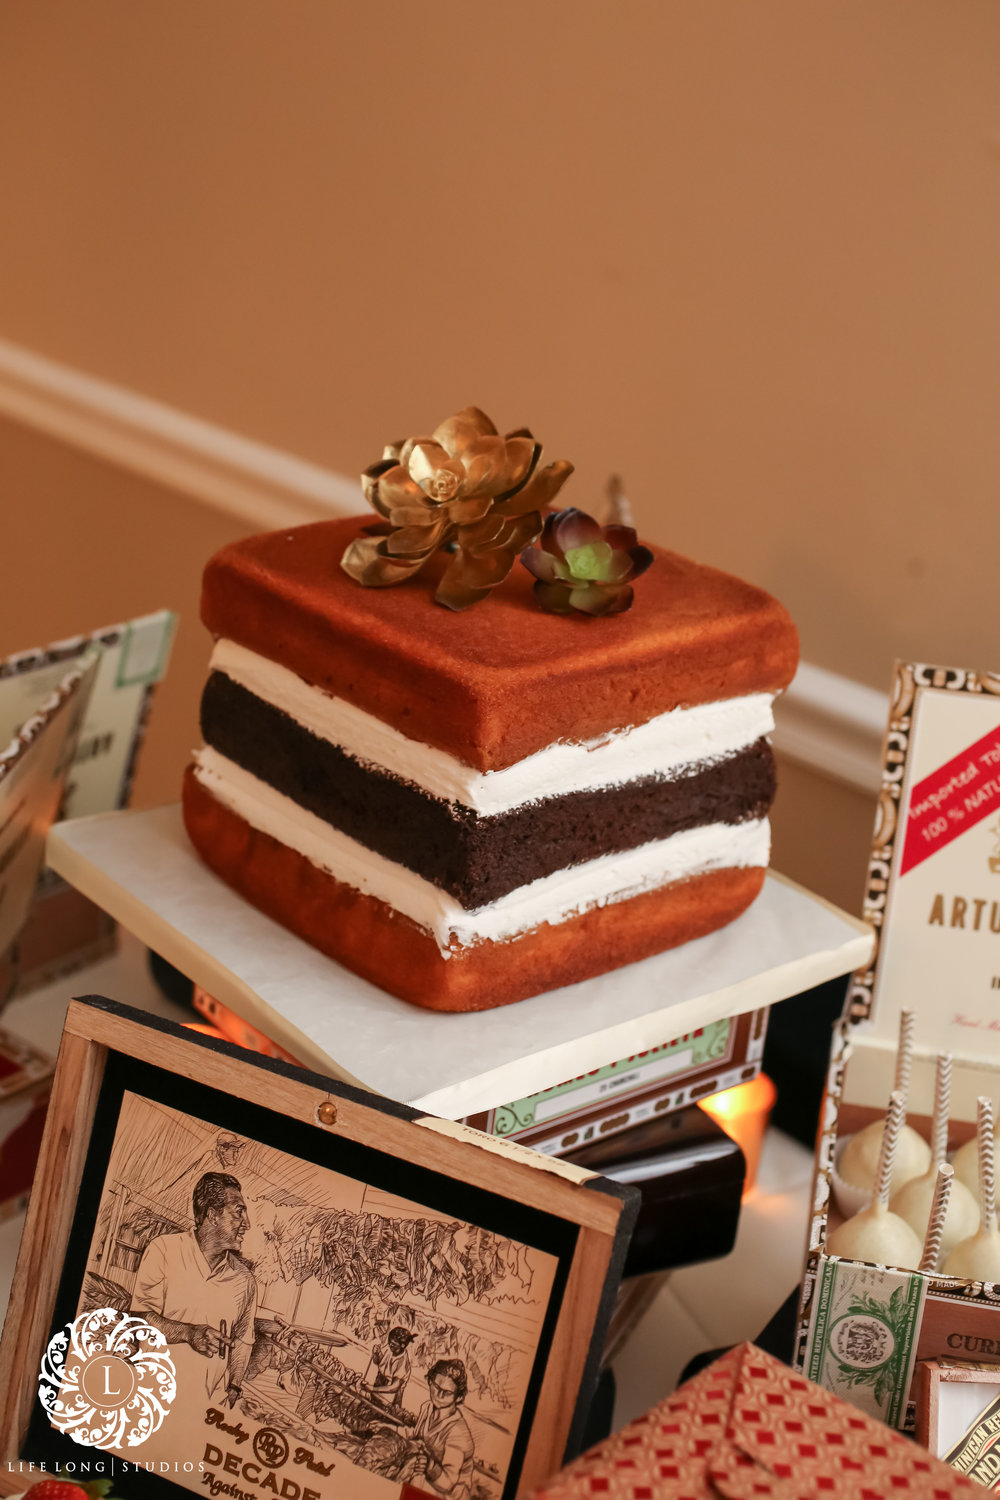 A square naked cake was at the heart of the dessert table, inspired by cigar boxes and made by a Tampa favorite, Alessi's Bakery!